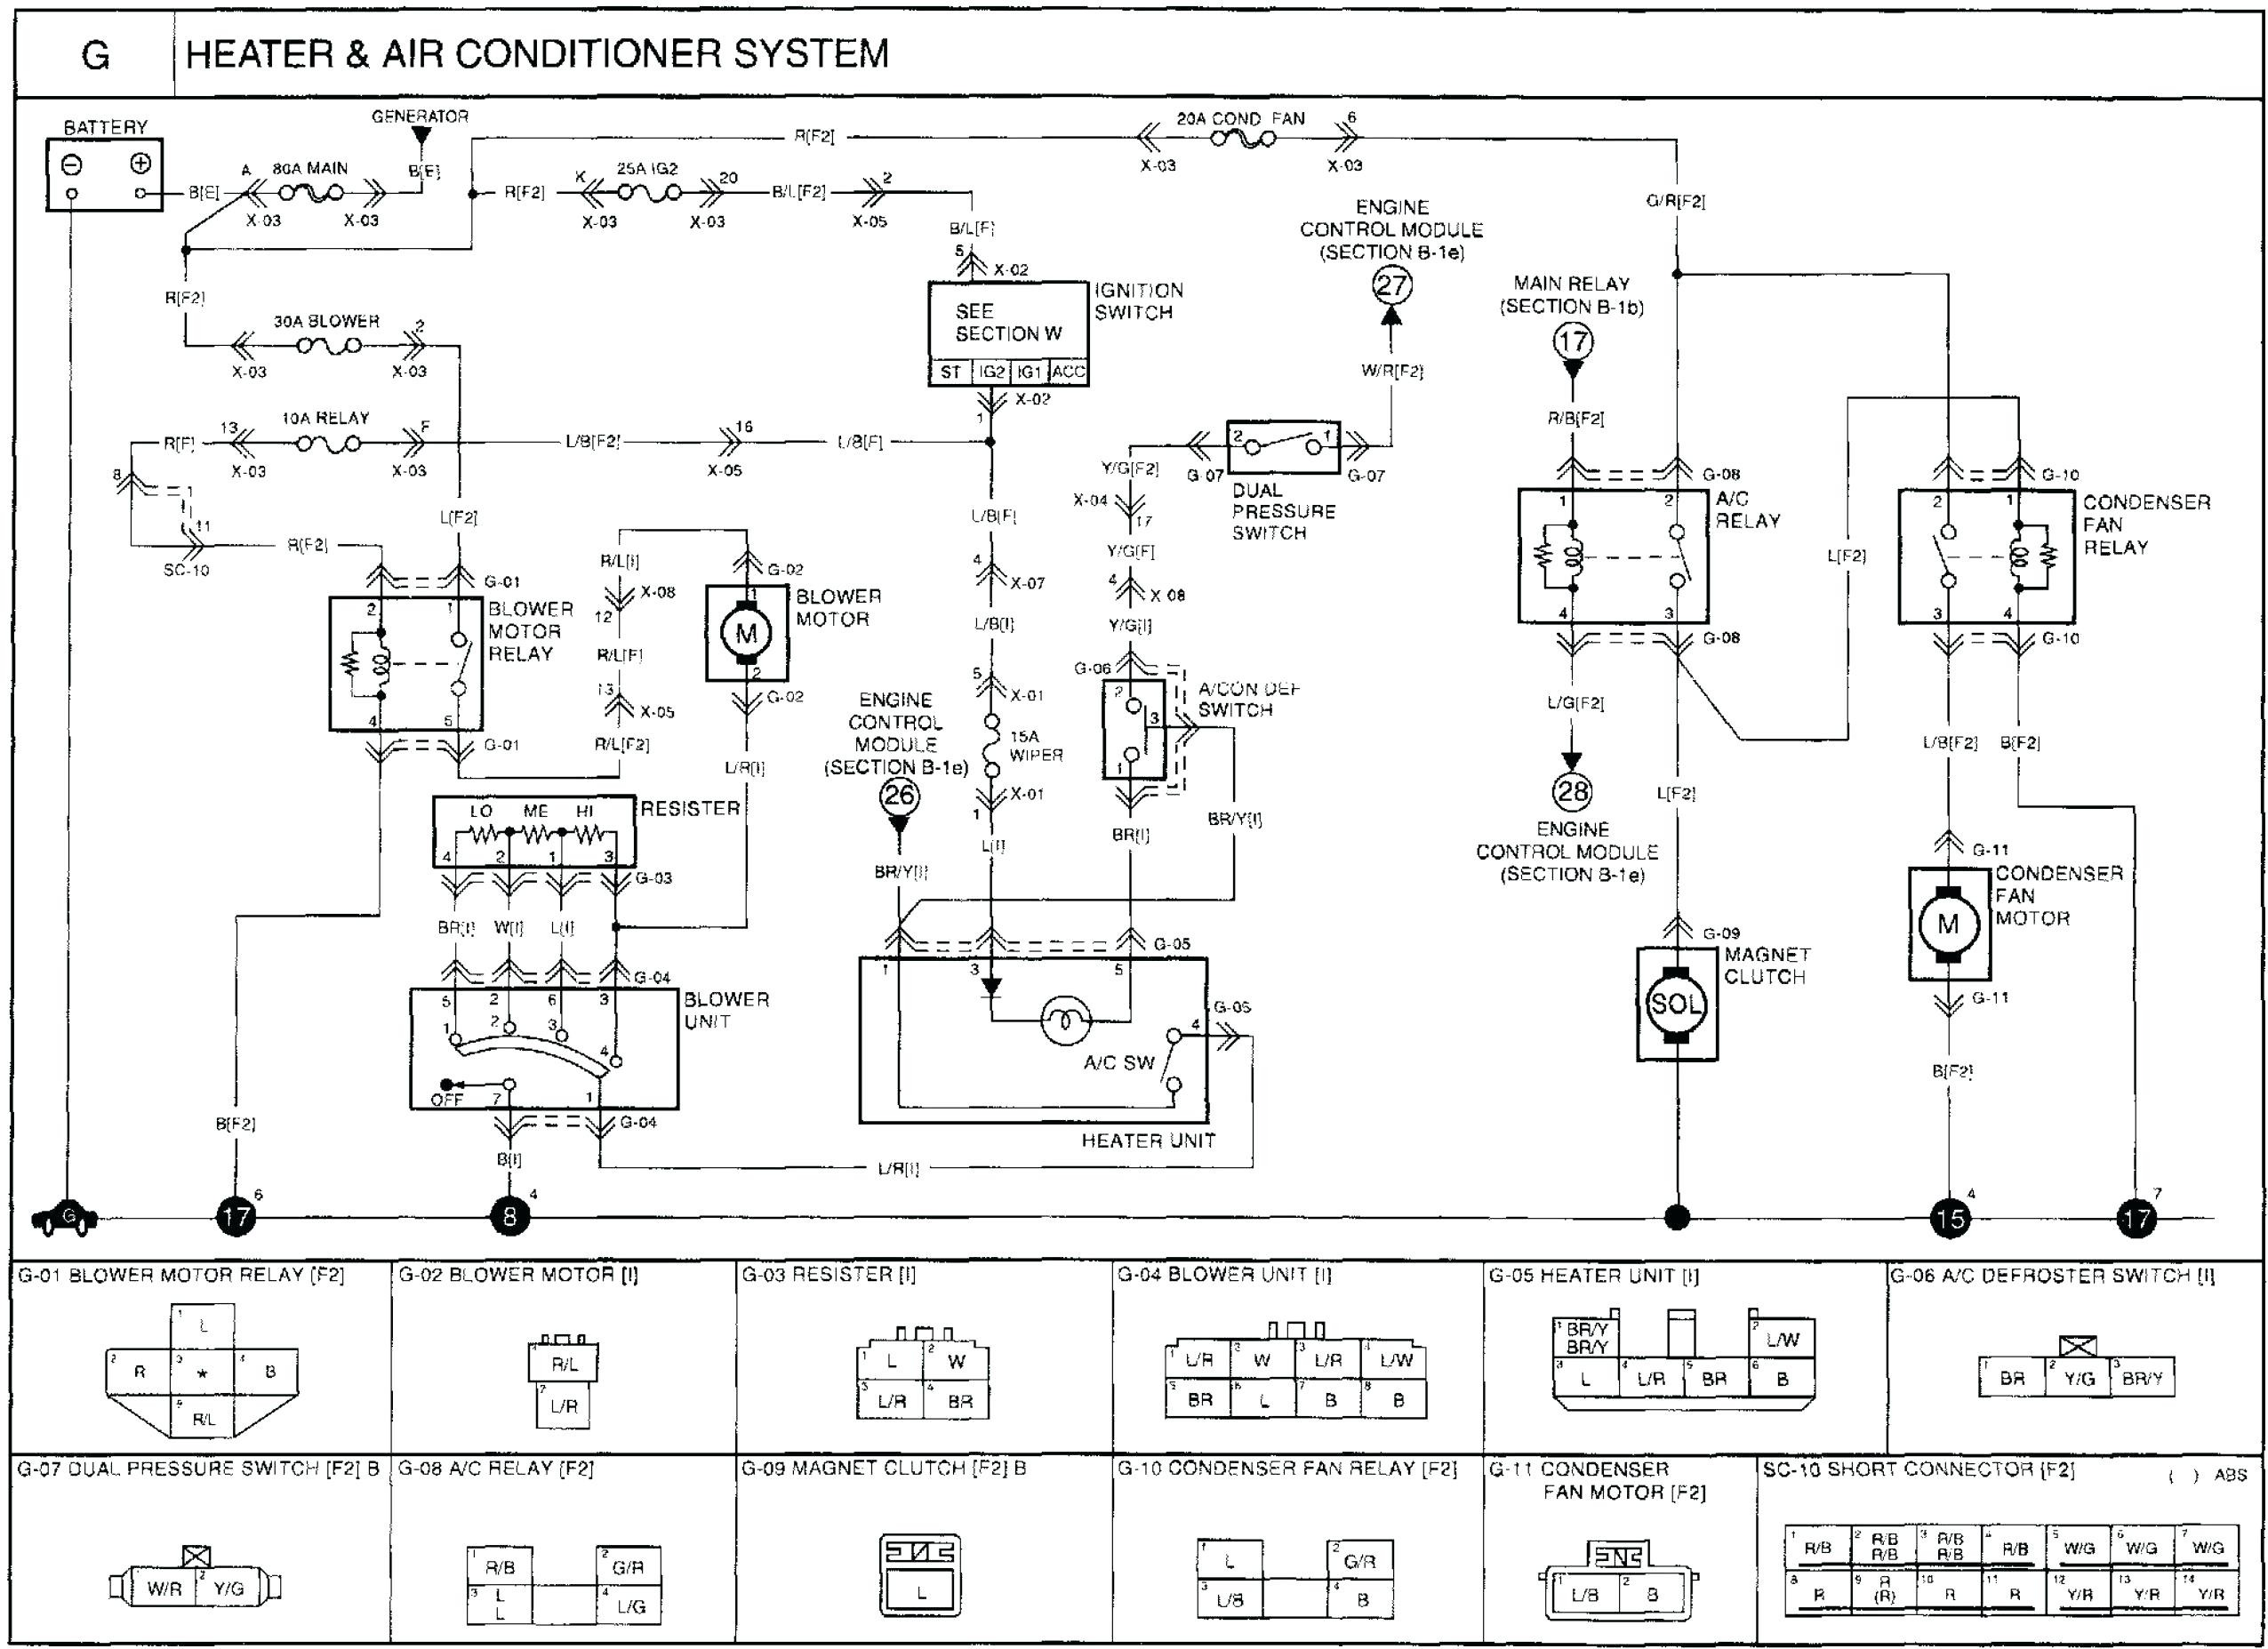 windshield wiper diagram also 2003 kia spectra transmission diagram rh  zimra co 2001 Sonata Fuse Box Diagram 2002 kia spectra interior fuse box  diagram